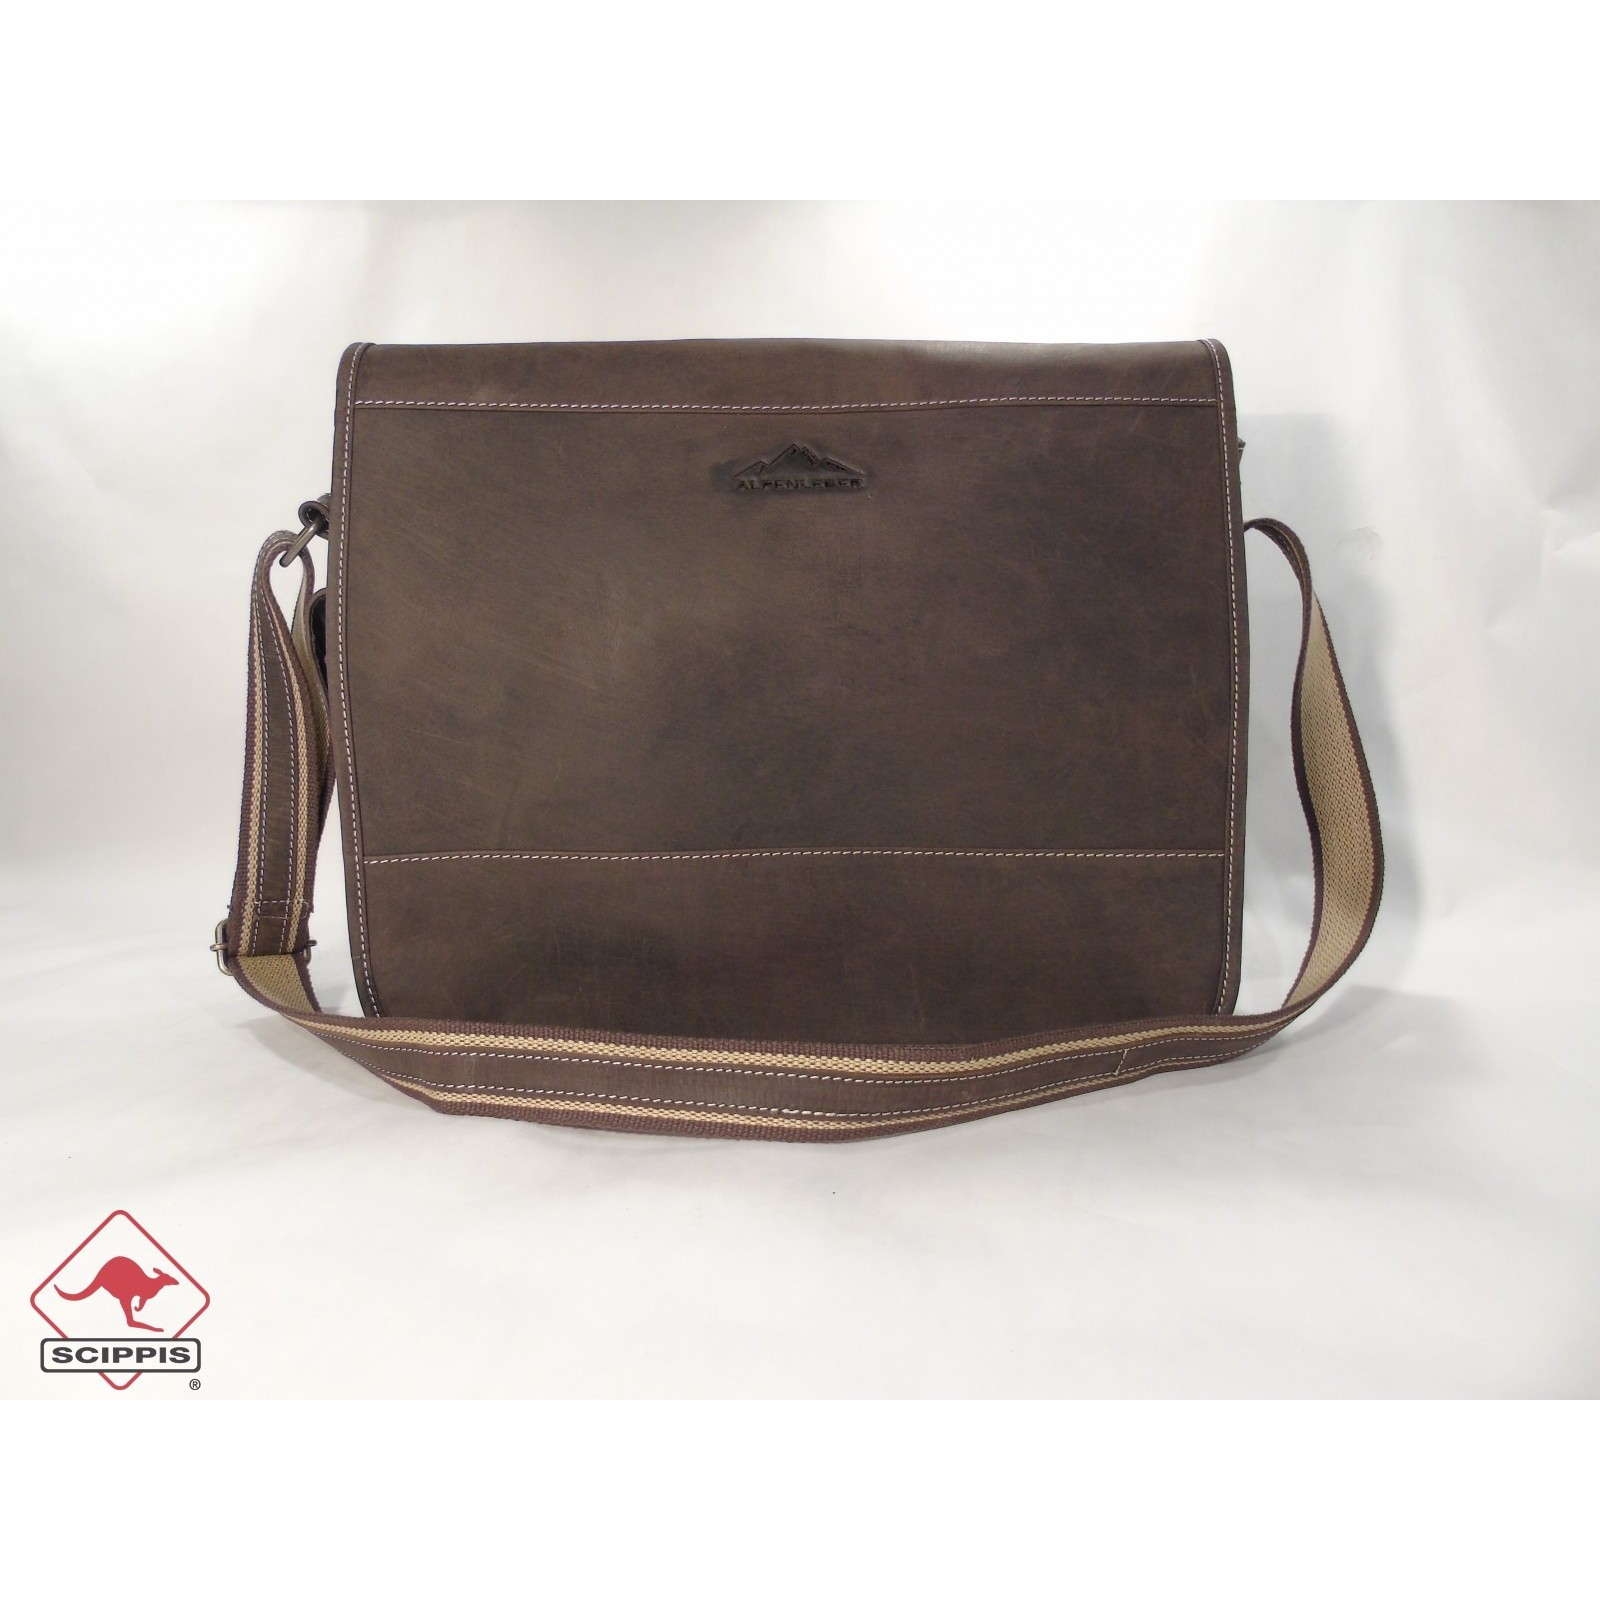 Scippis Boston Messenger Bag